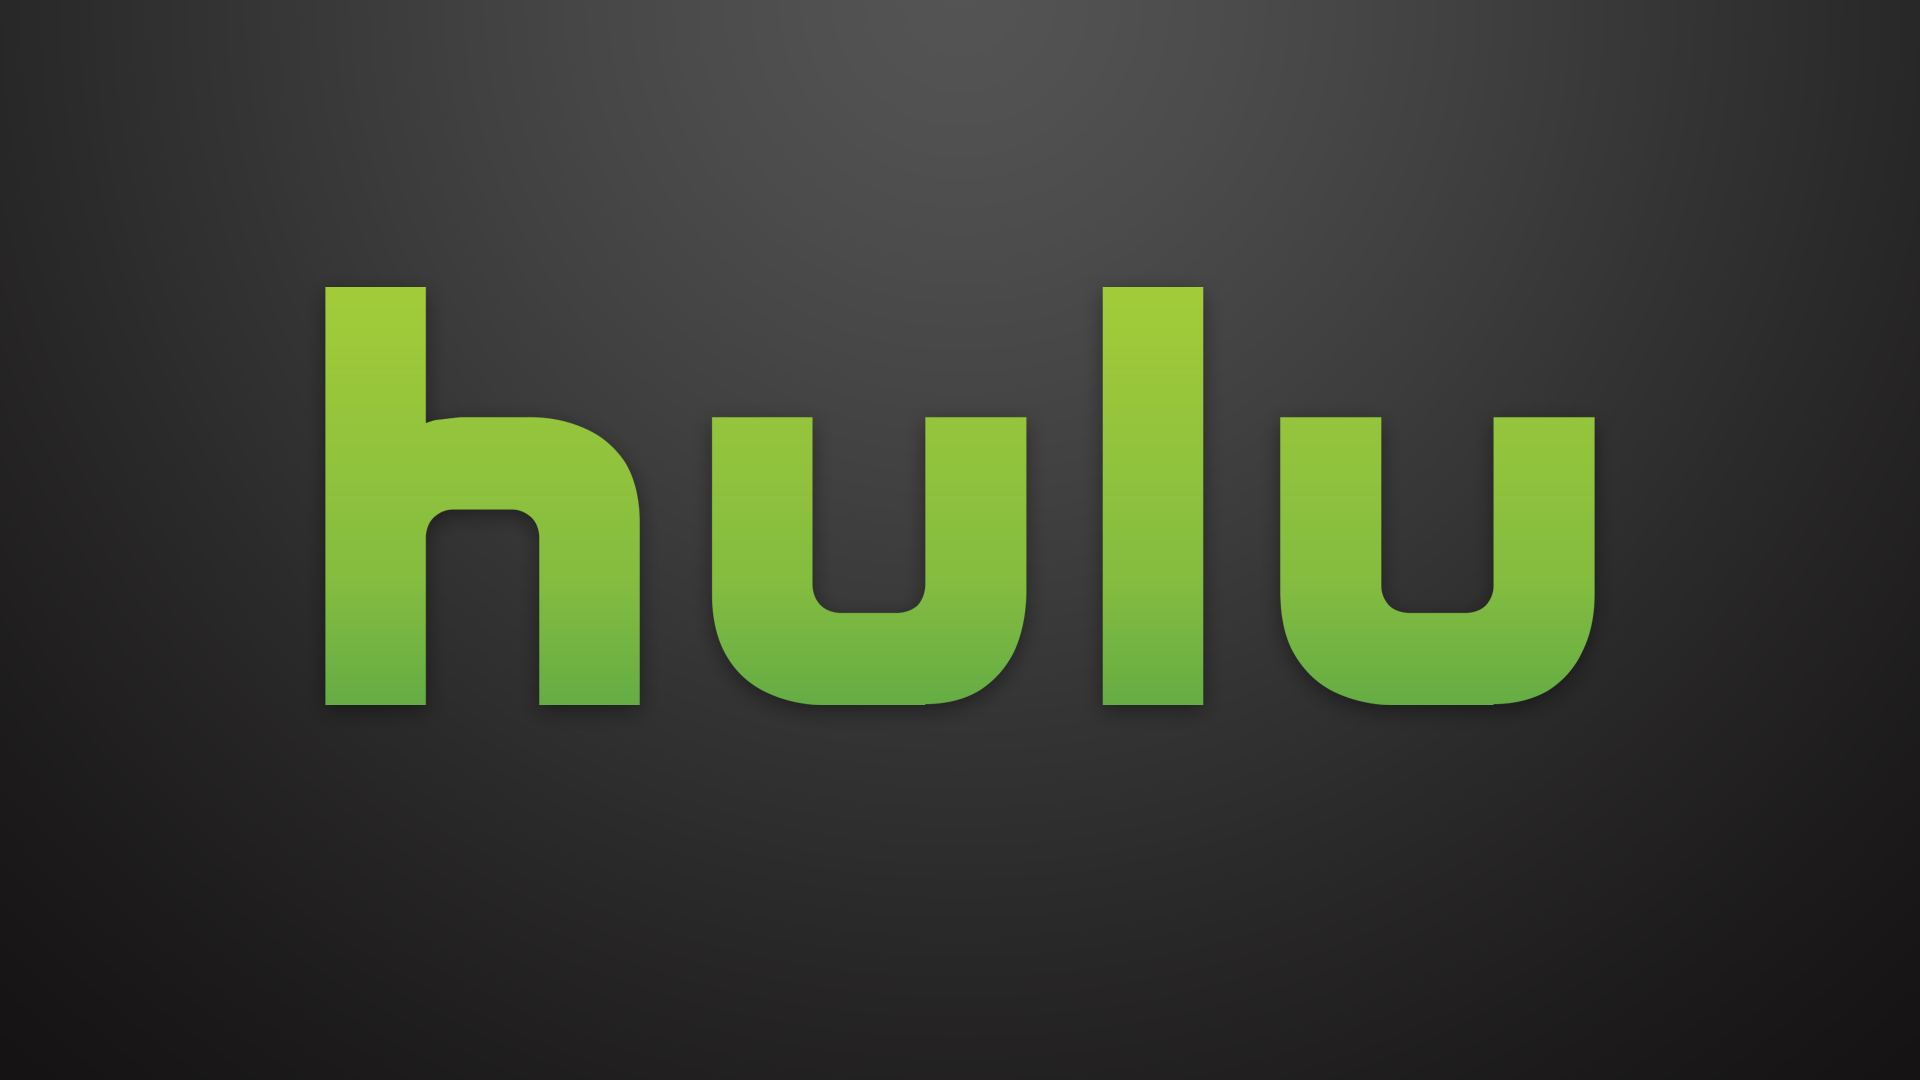 Disney now controls Hulu after Comcast deal